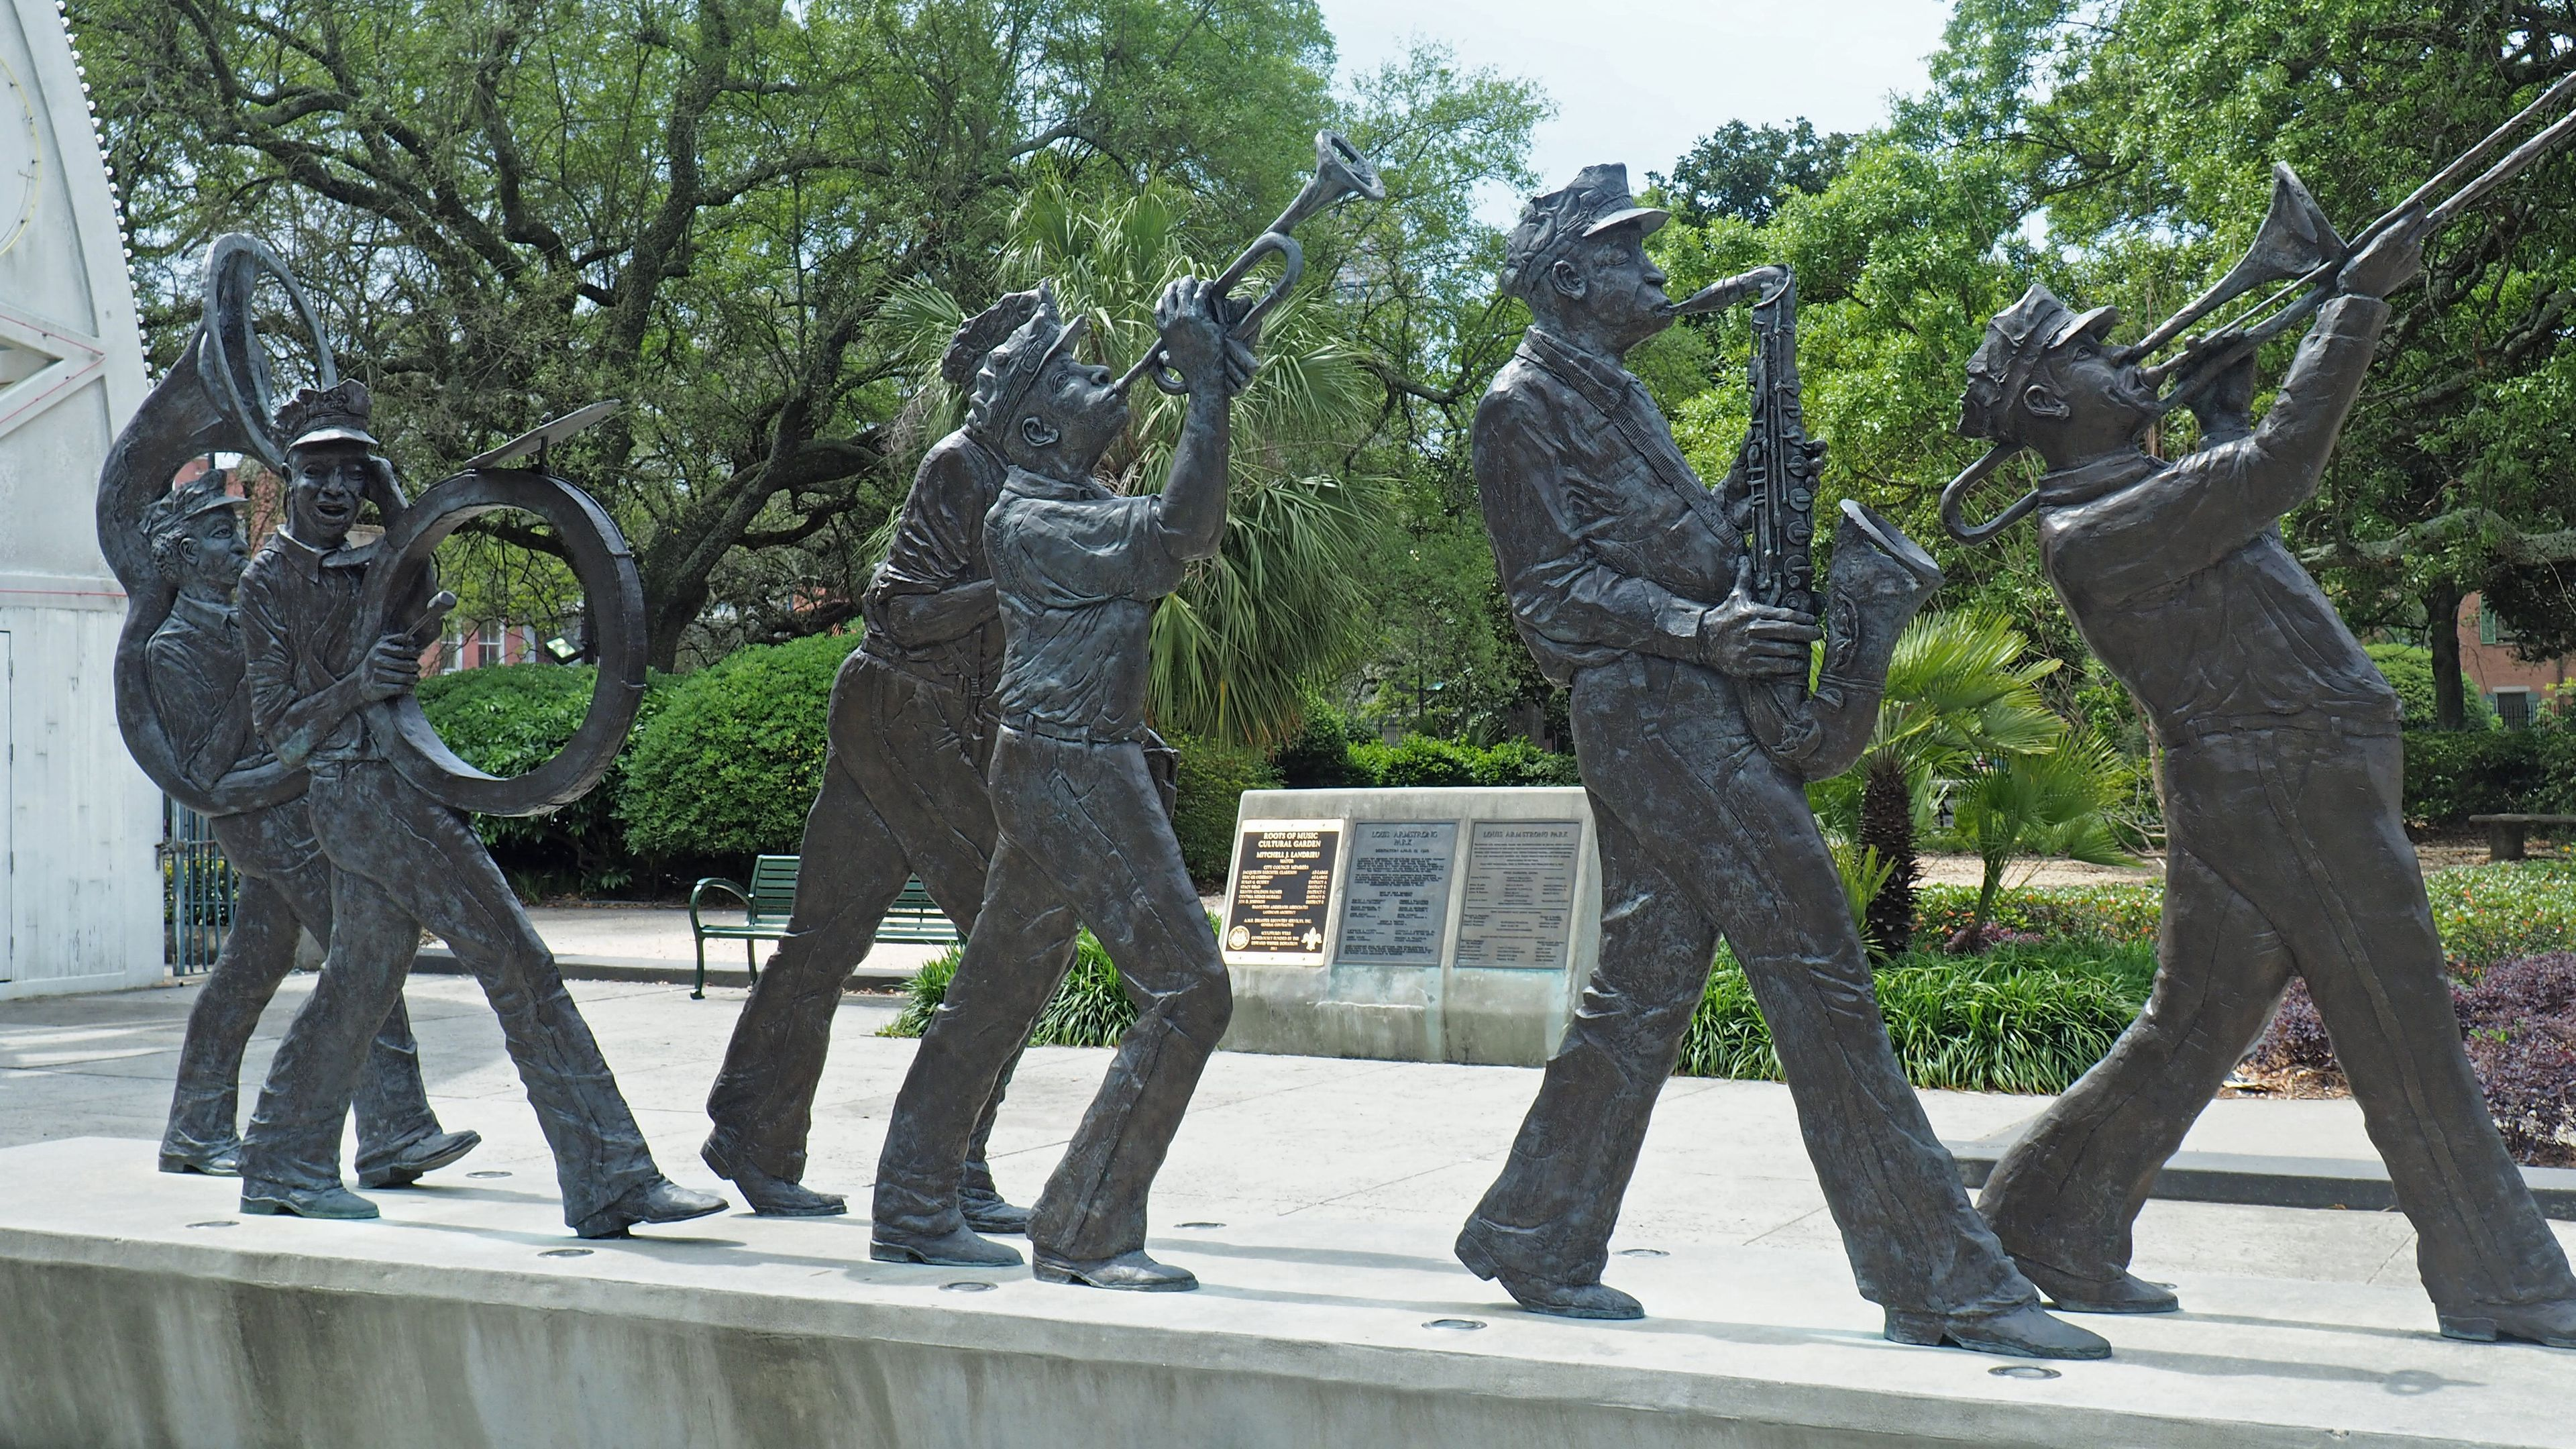 statues of musicians